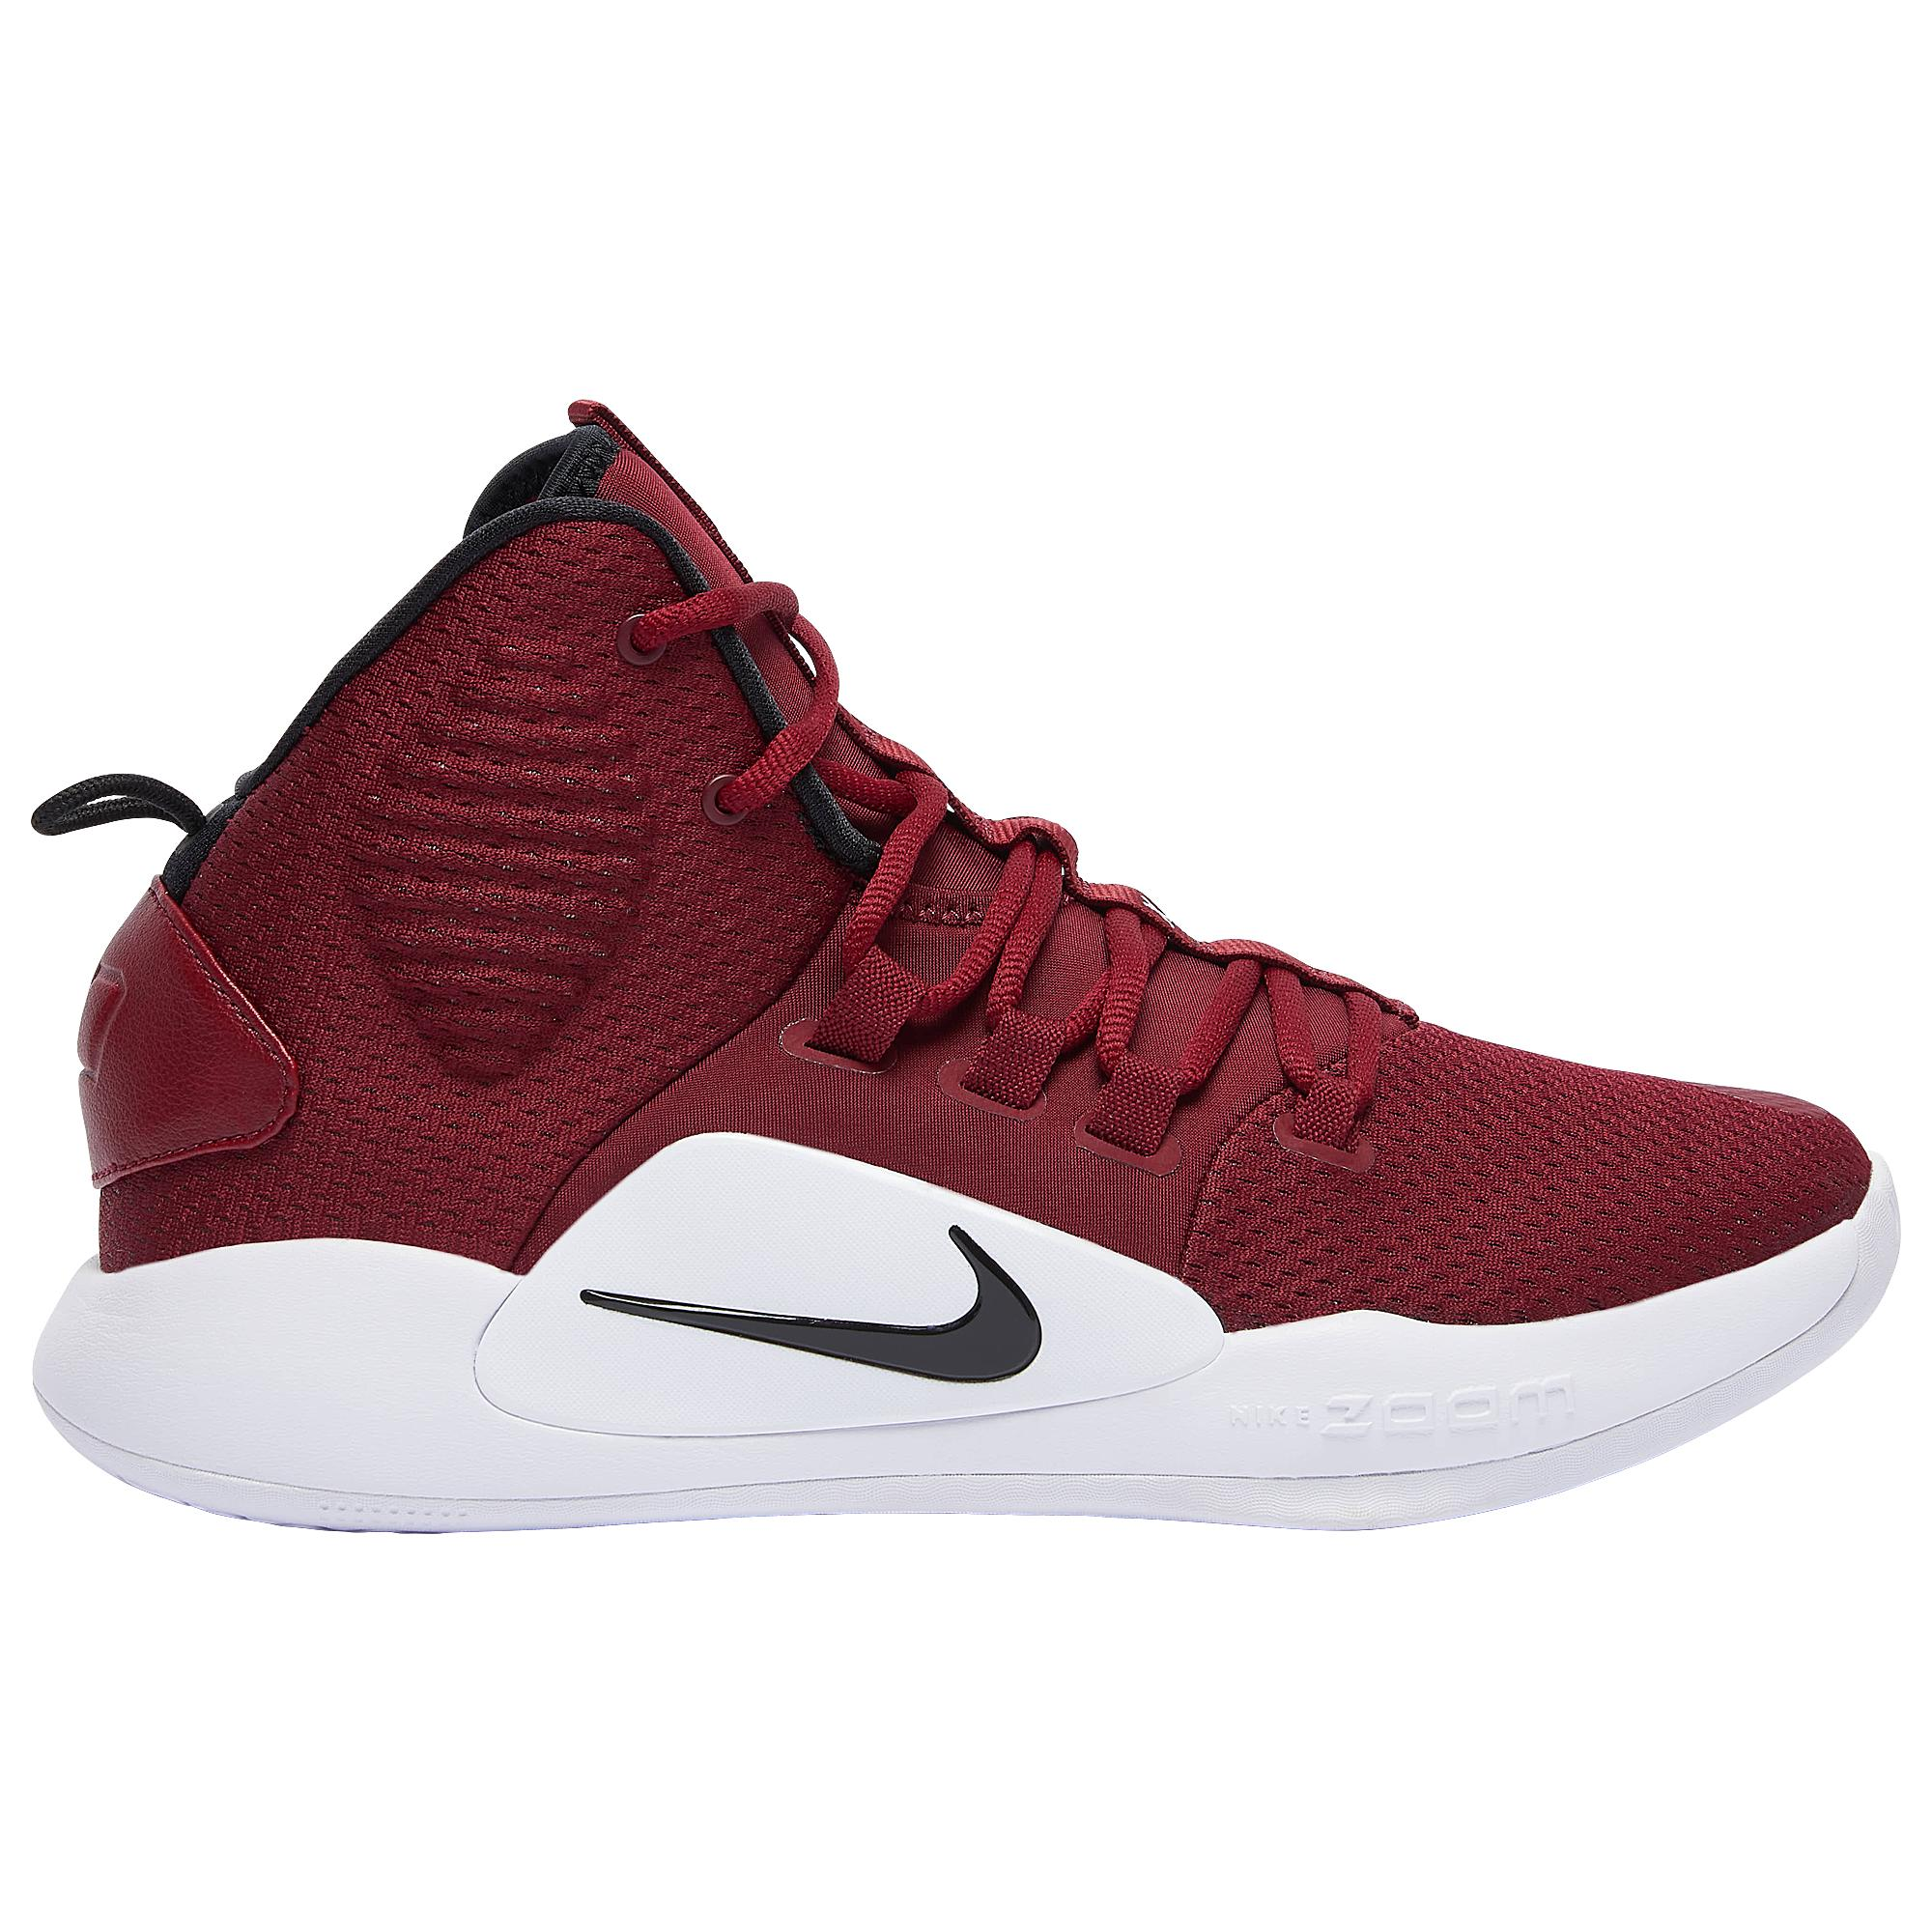 detailed look 1dcea 317d5 Nike Hyperdunk X Mid in Red for Men - Lyst